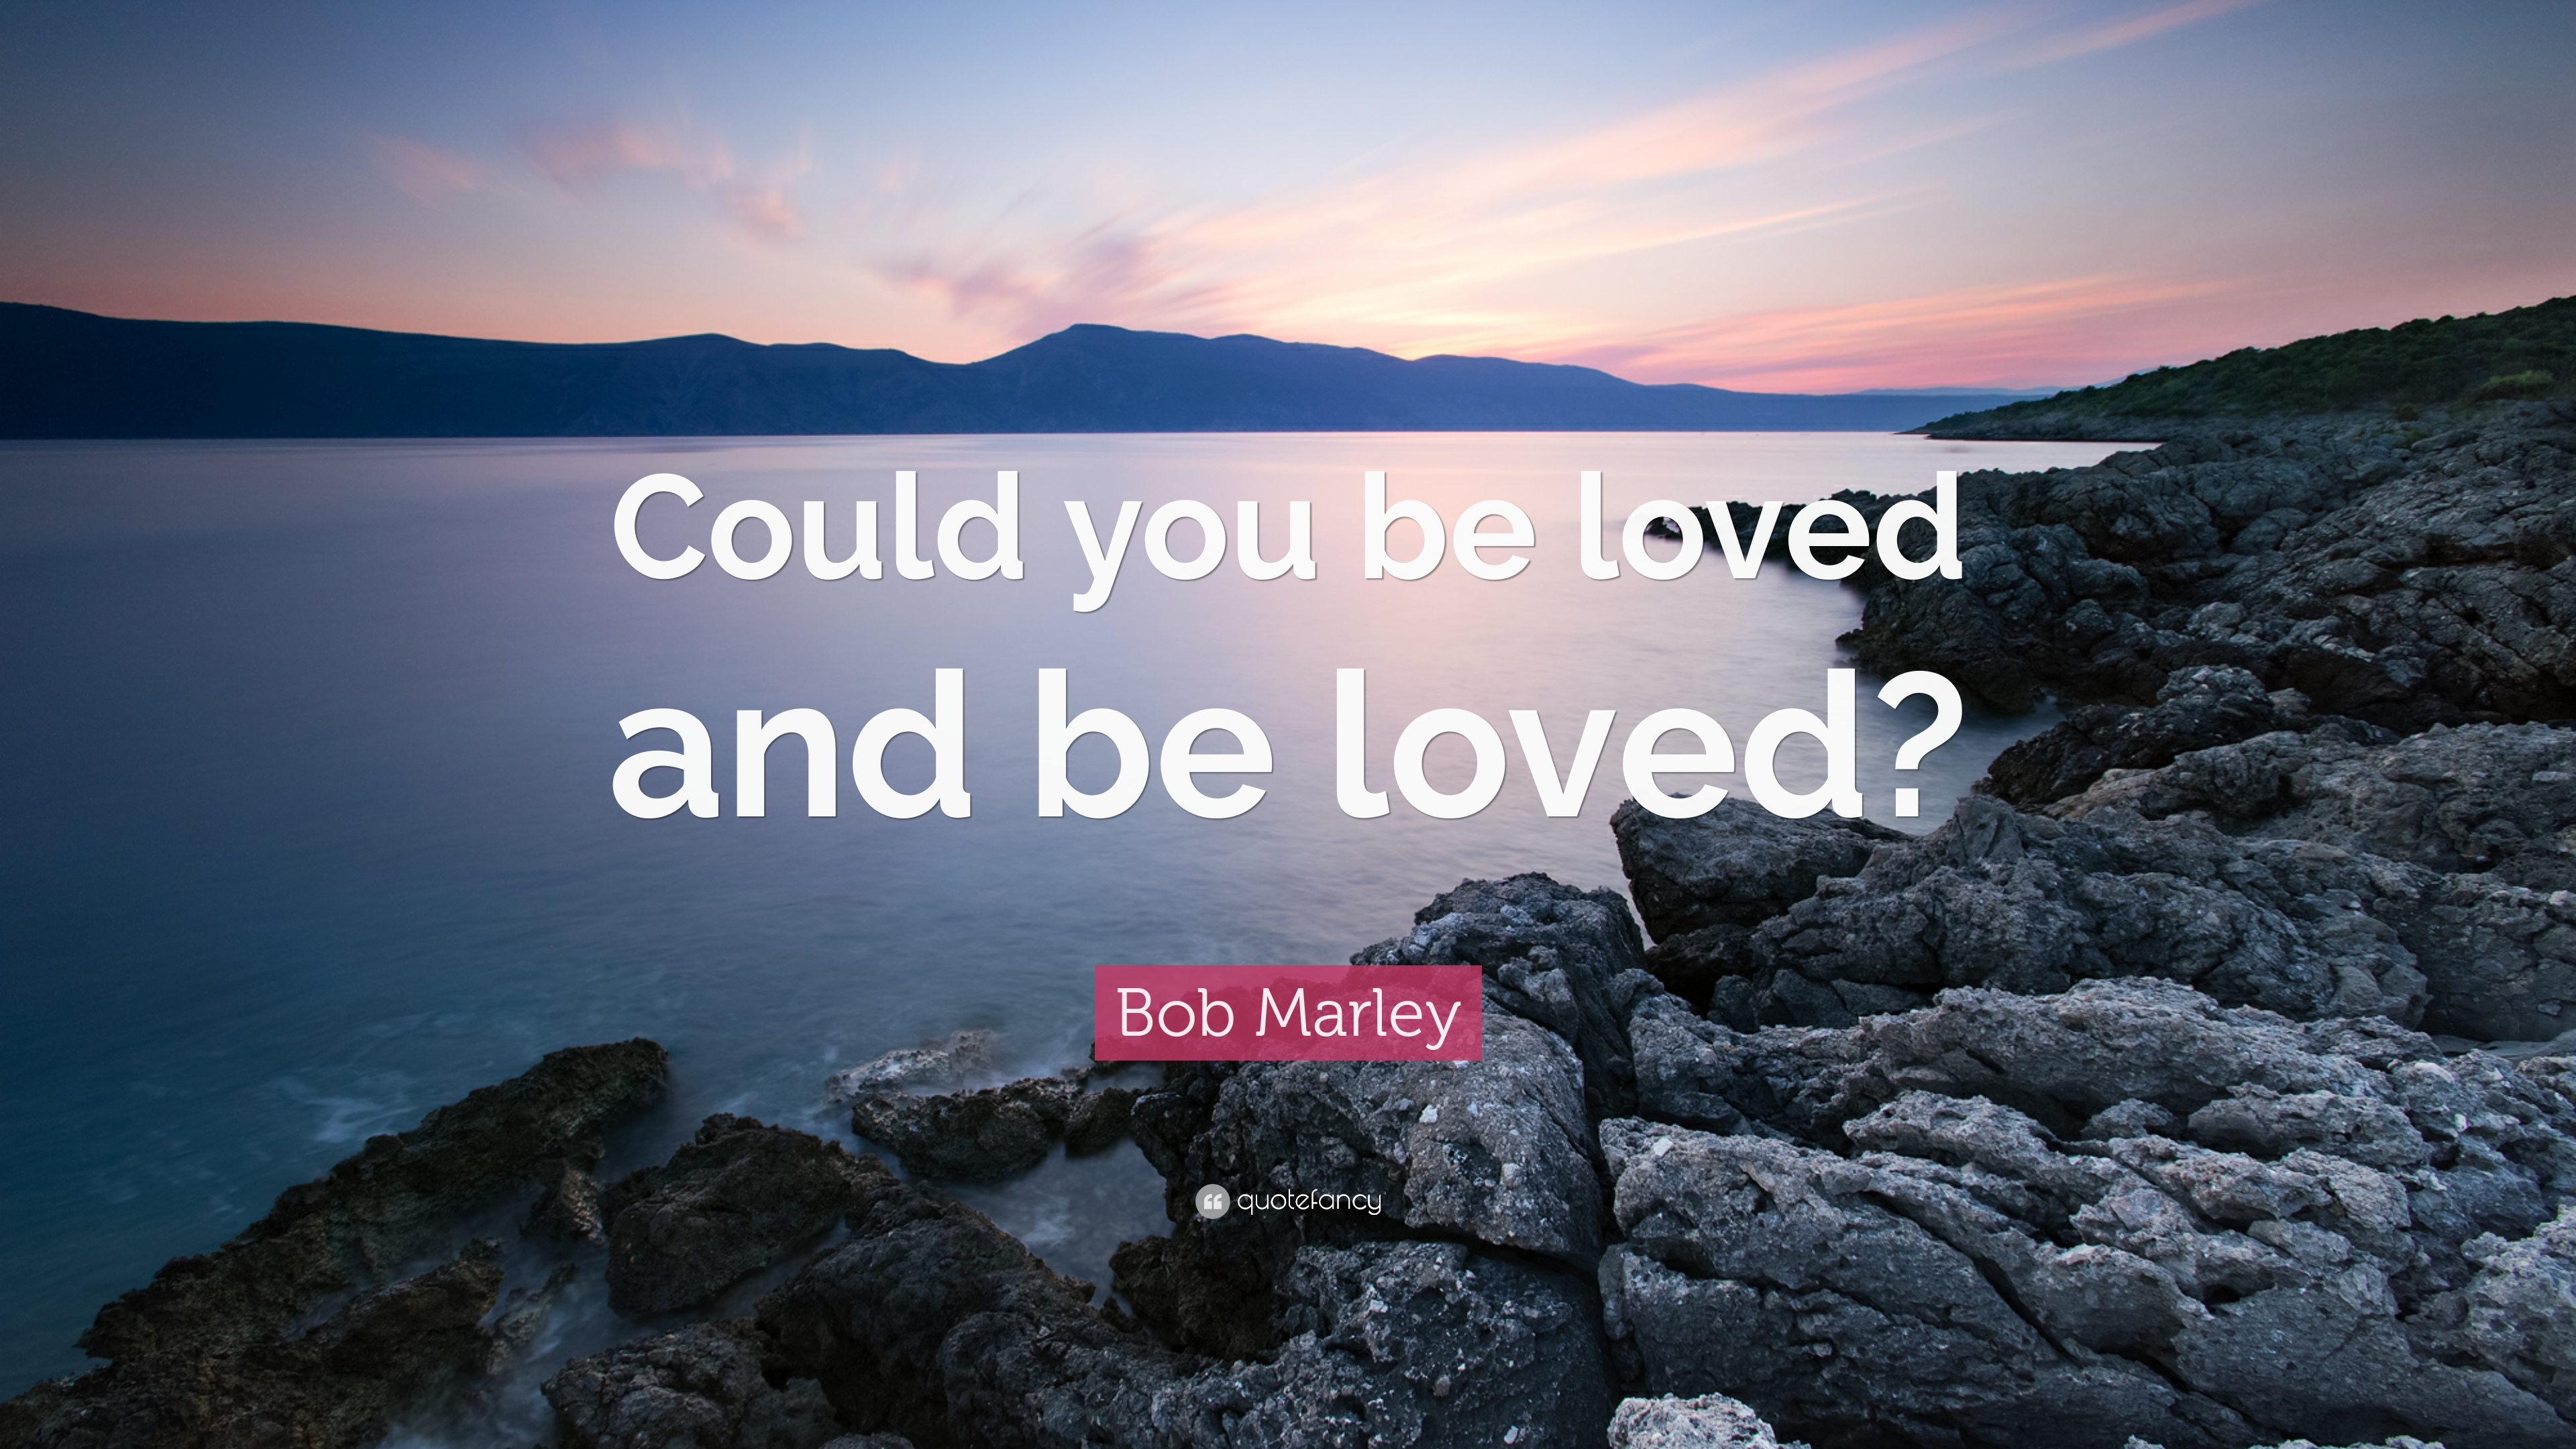 Bob marley quotes could you be loved